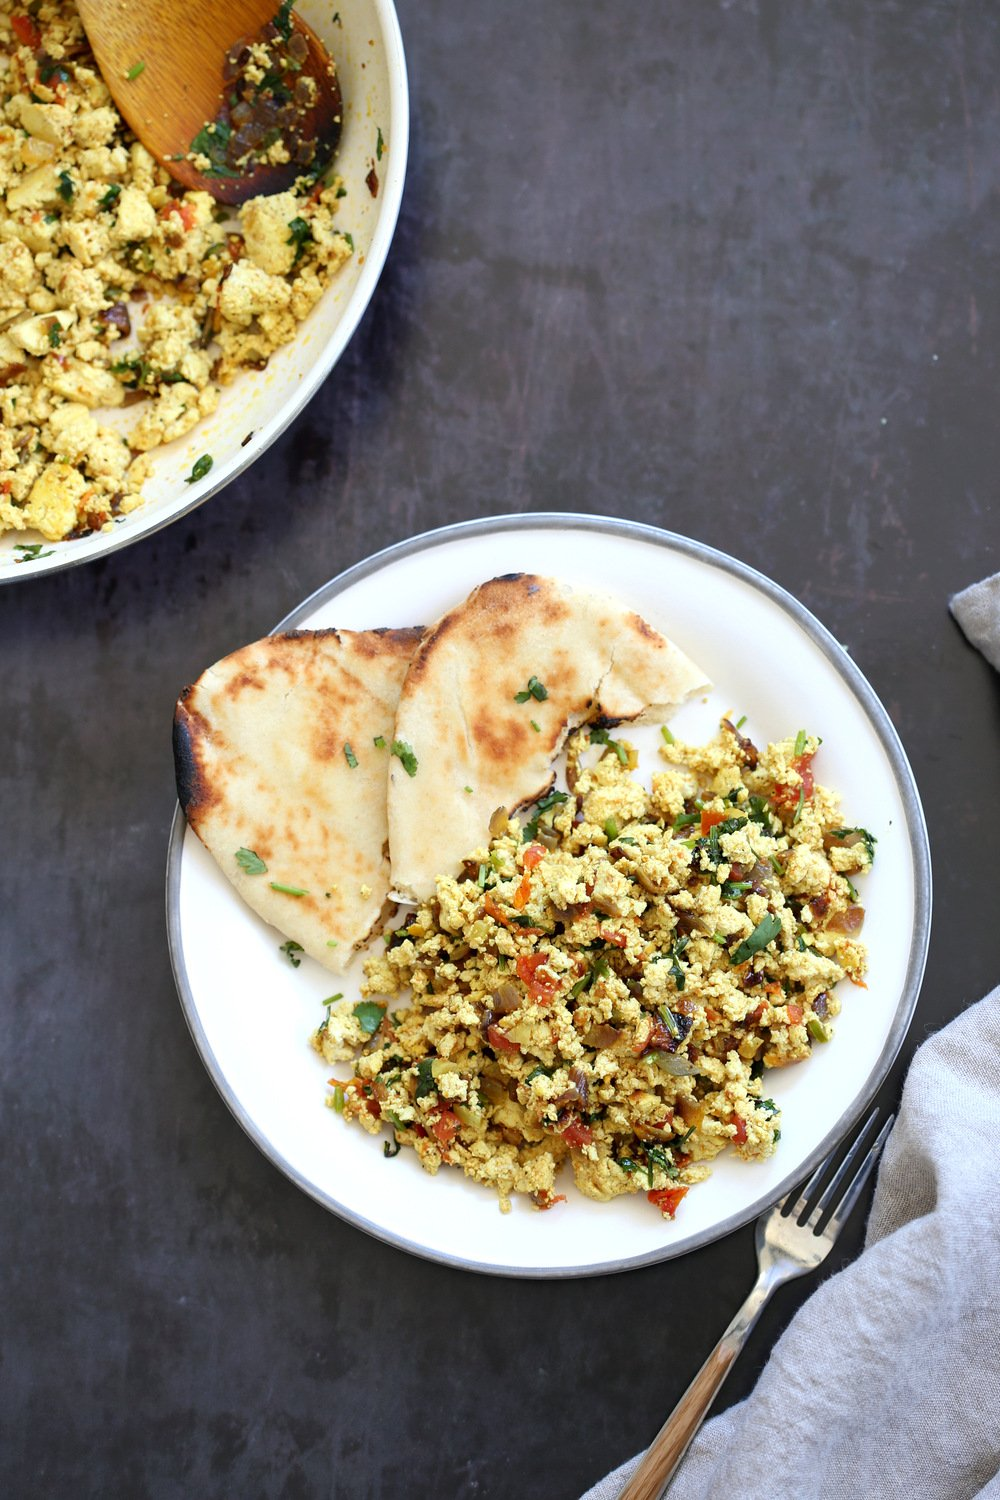 Tofu Bhurji - Vegan Bhurji or Akoori . Indian Scramble. Tofu scrambled with onion, tomato, cilantro and cumin for a delicious Eggless Bhurji Scramble Breakfast. 1 Pot 15 mins #Vegan #Glutenfree #Nutfree #Recipe #VeganRicha #indianRecipe #tofuburji Can be soyfree.